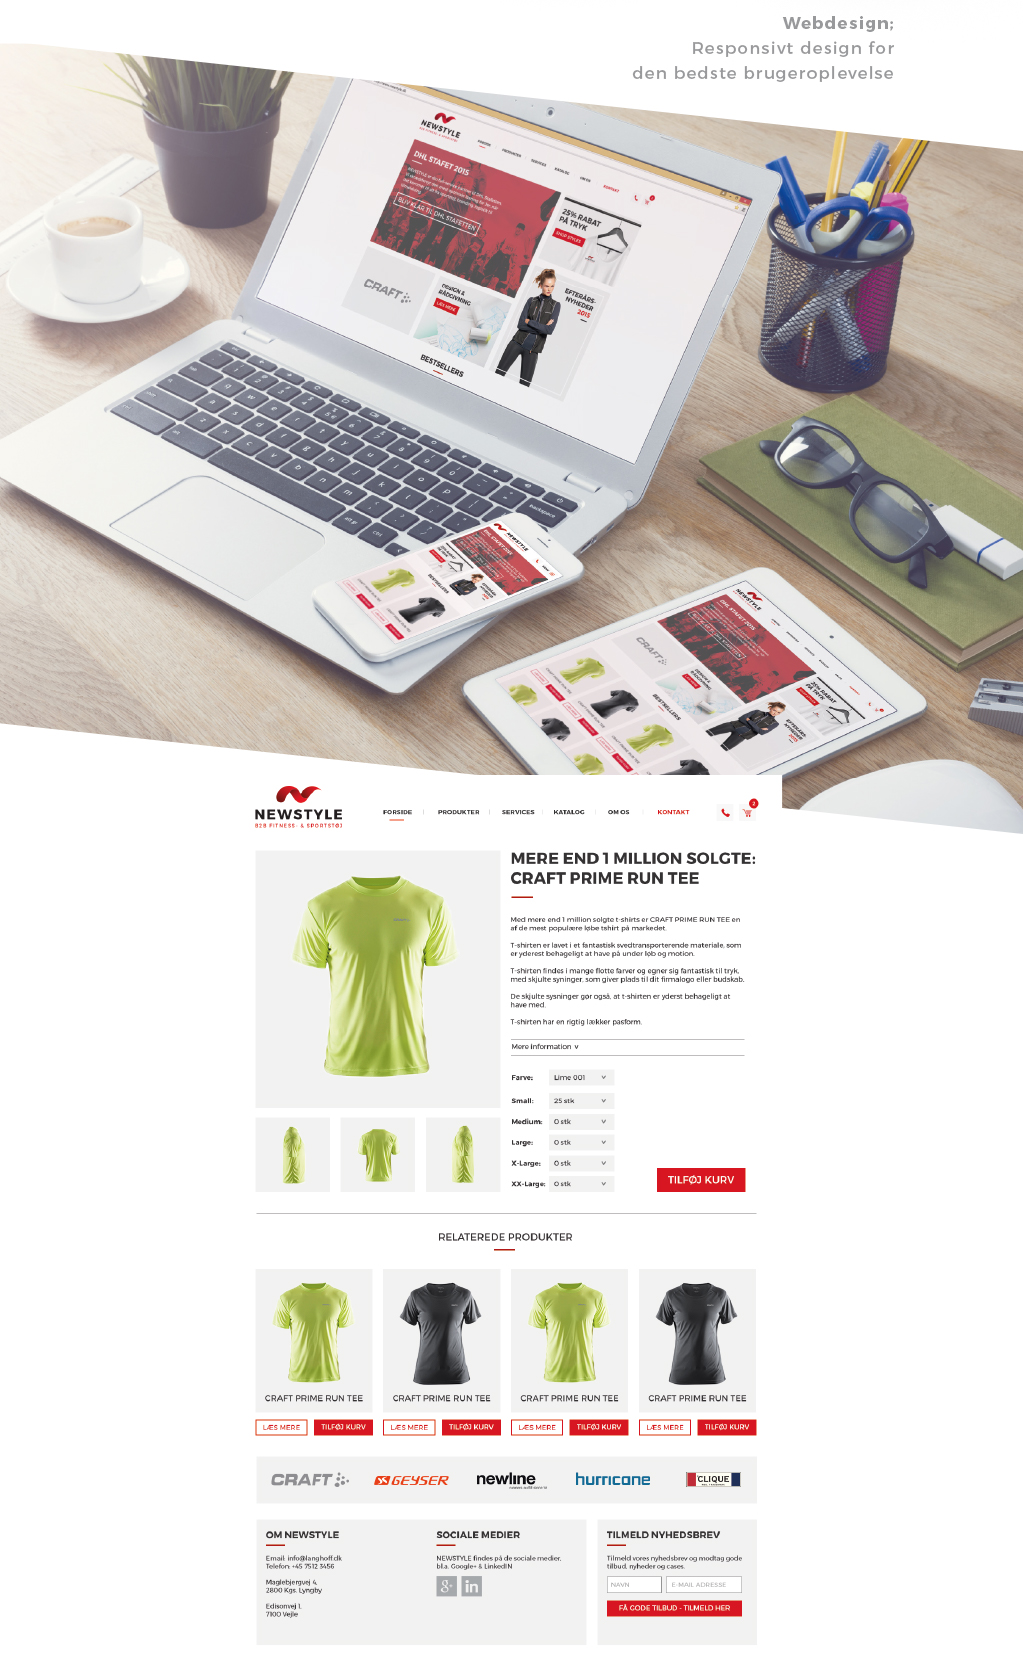 Visuel identitet NEWSTYLE - webdesign